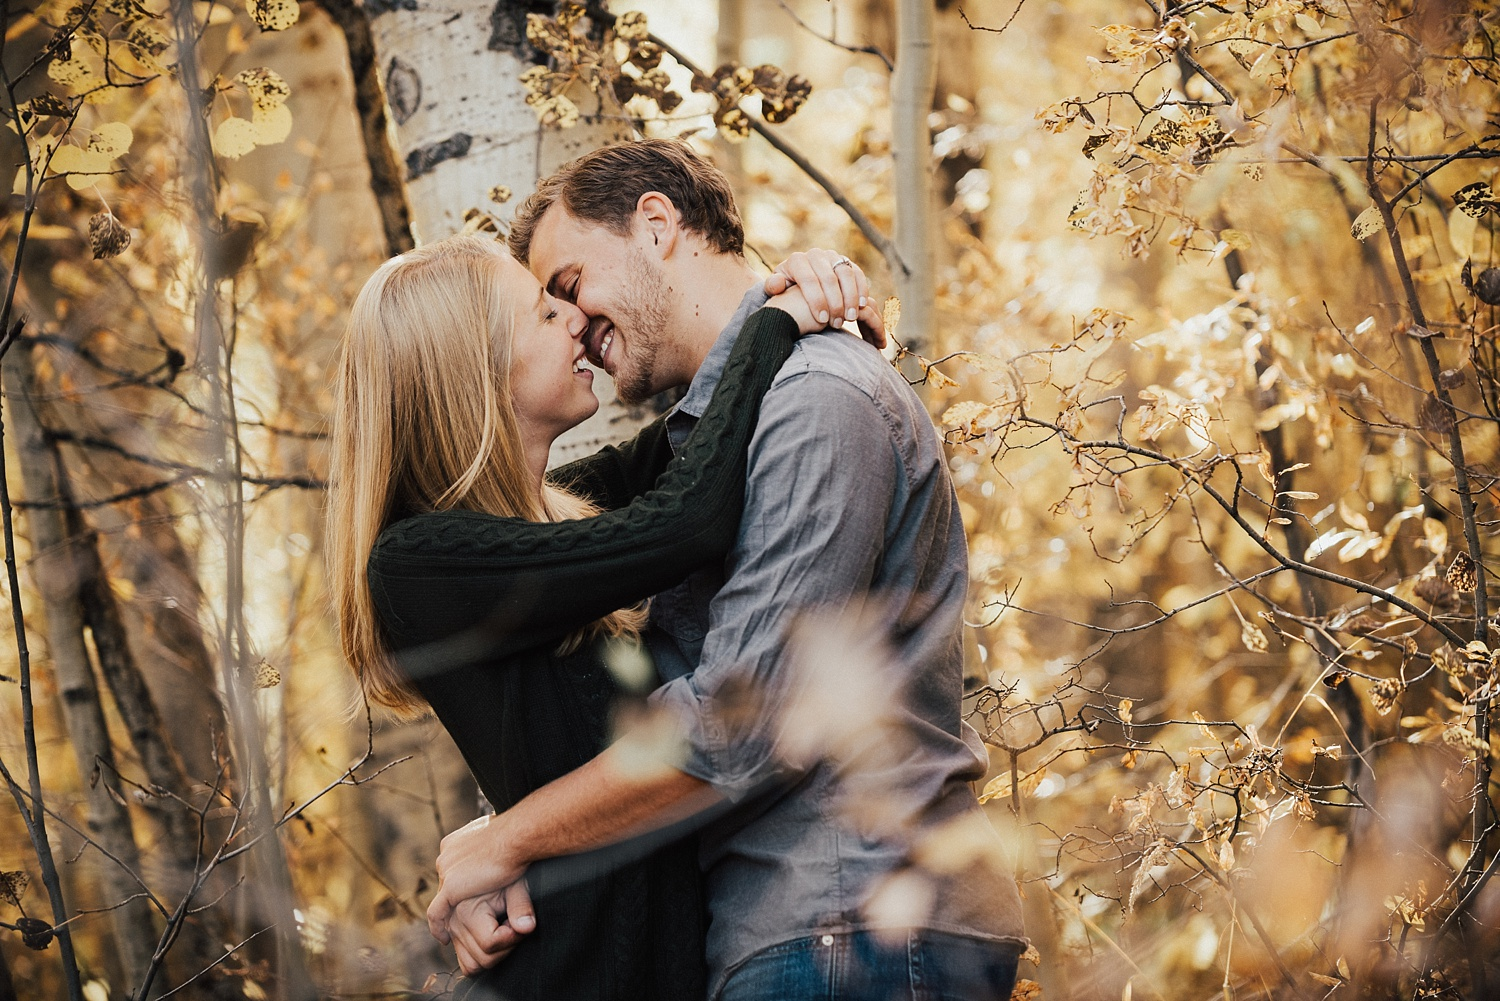 Nate_shepard_photography_engagement_wedding_photographer_denver_colorado_0288.jpg